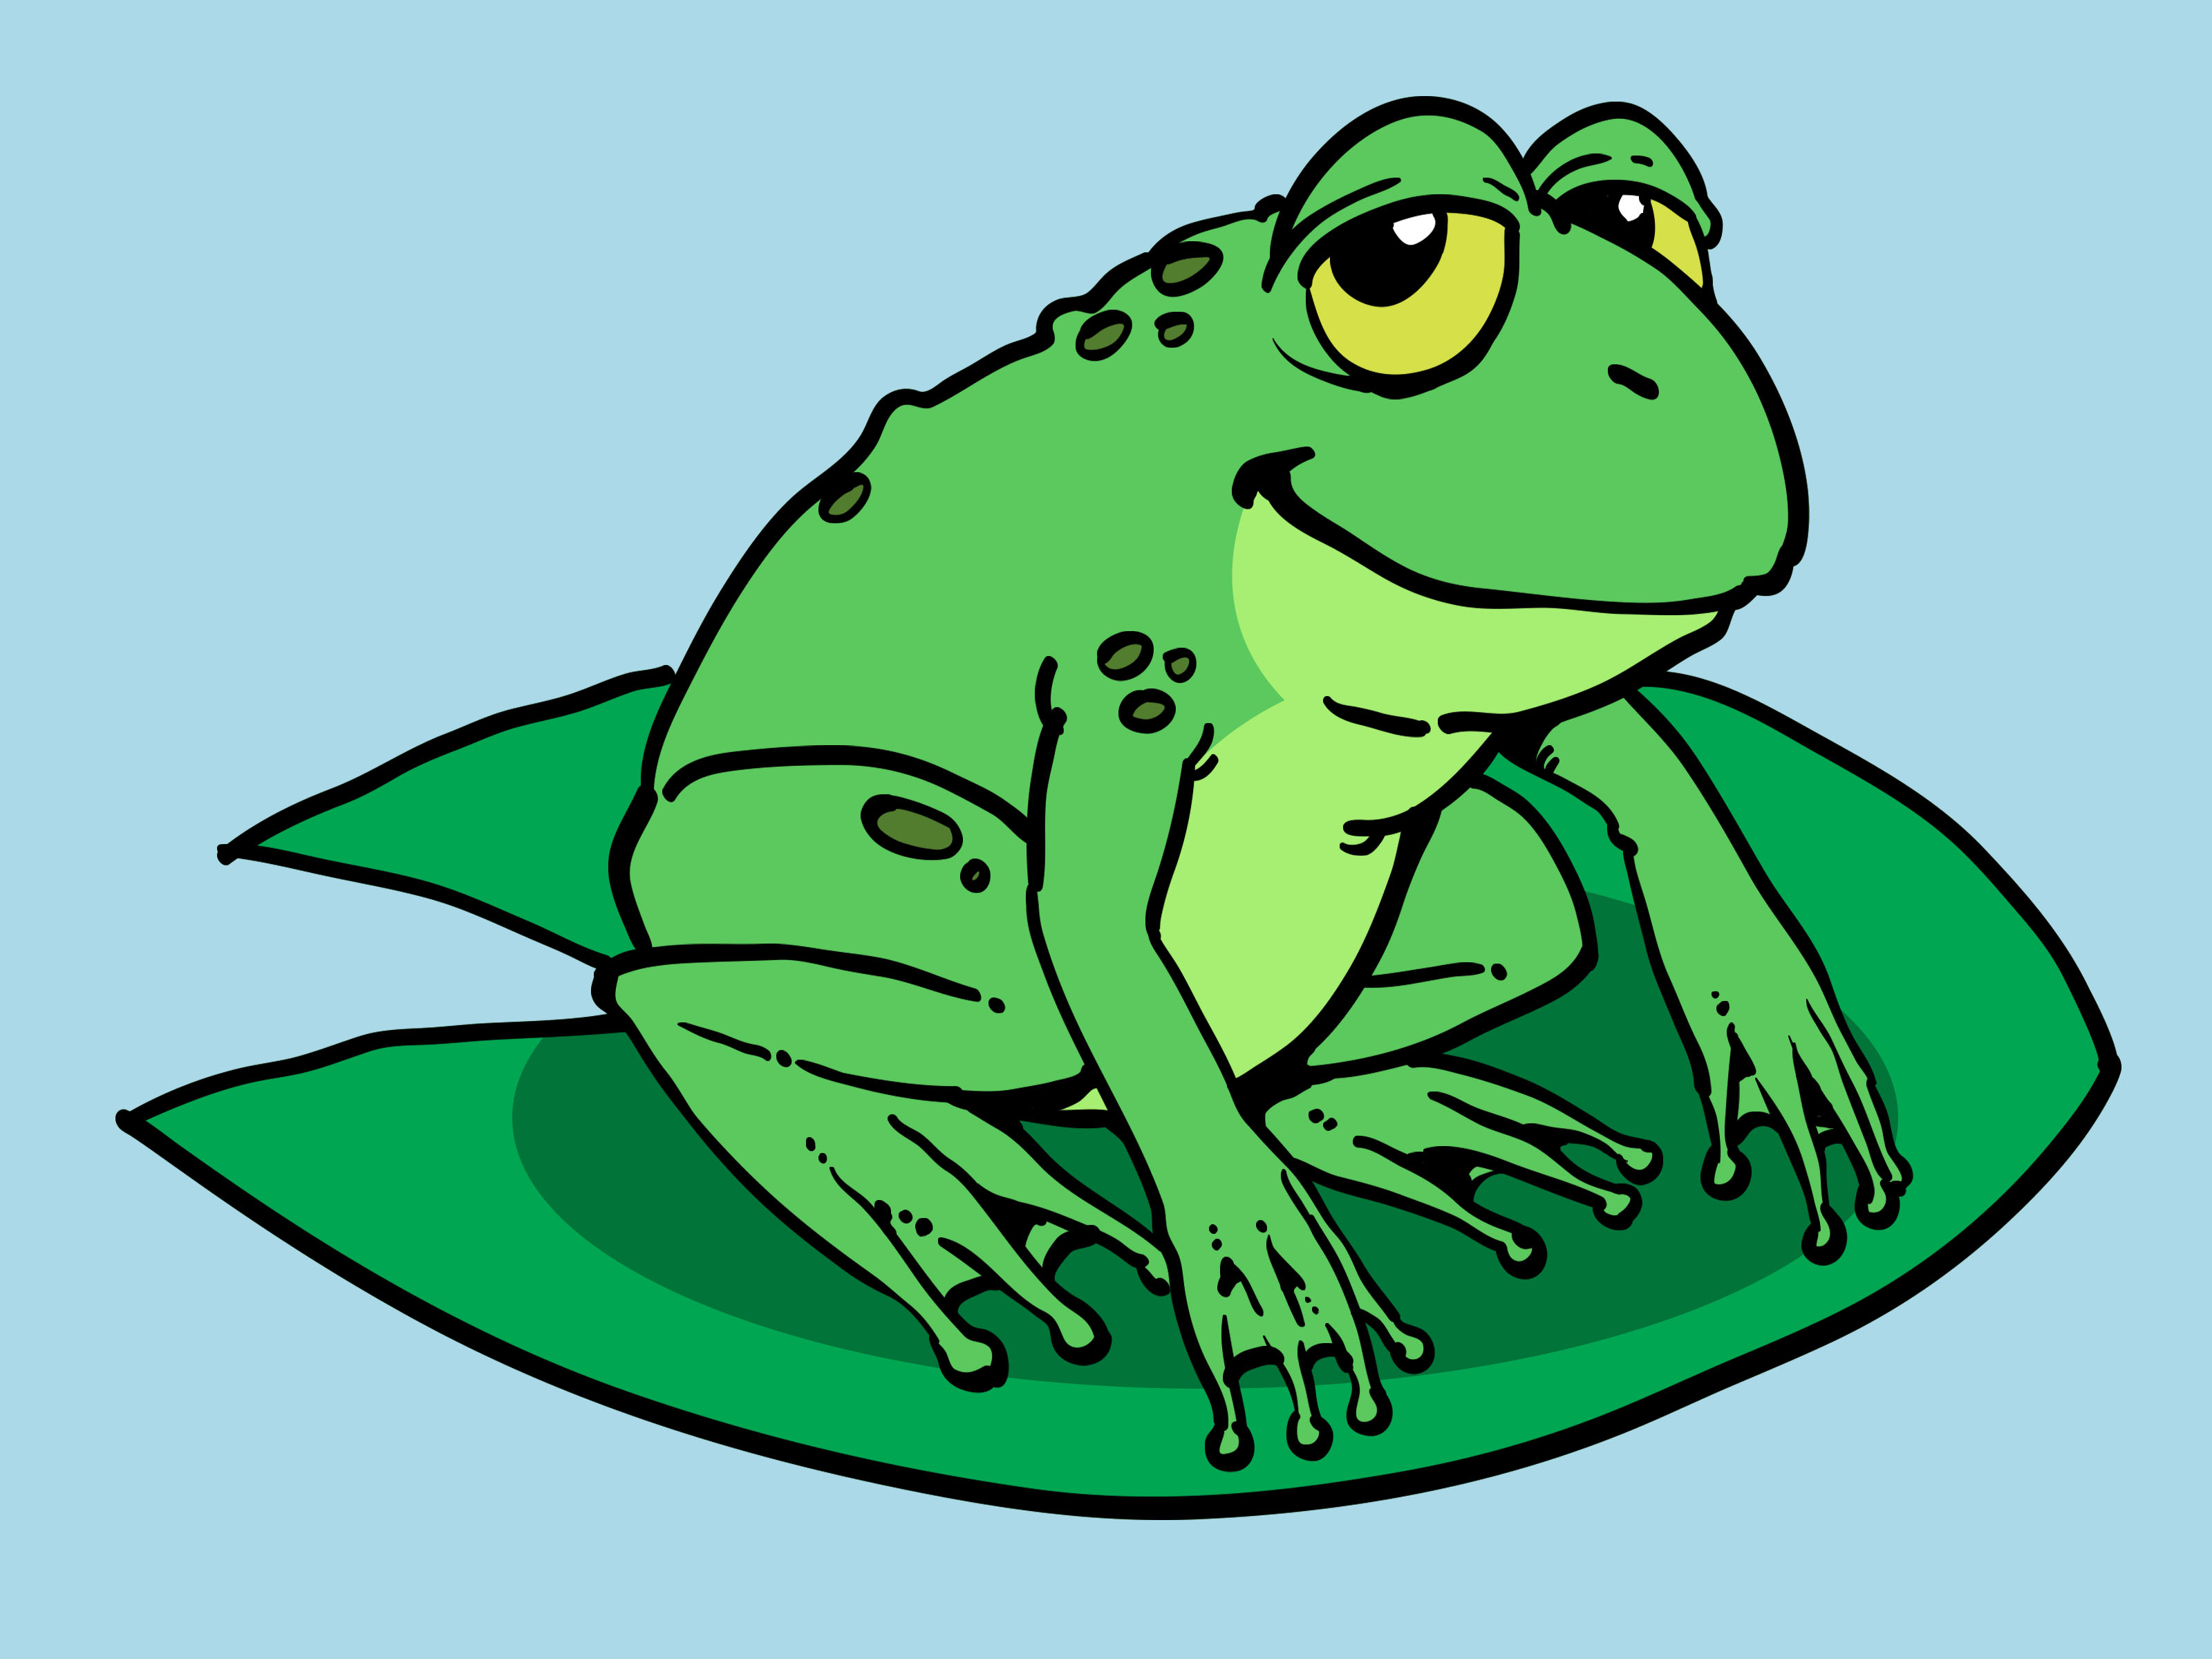 Animated Frogs Images | Free download on ClipArtMag